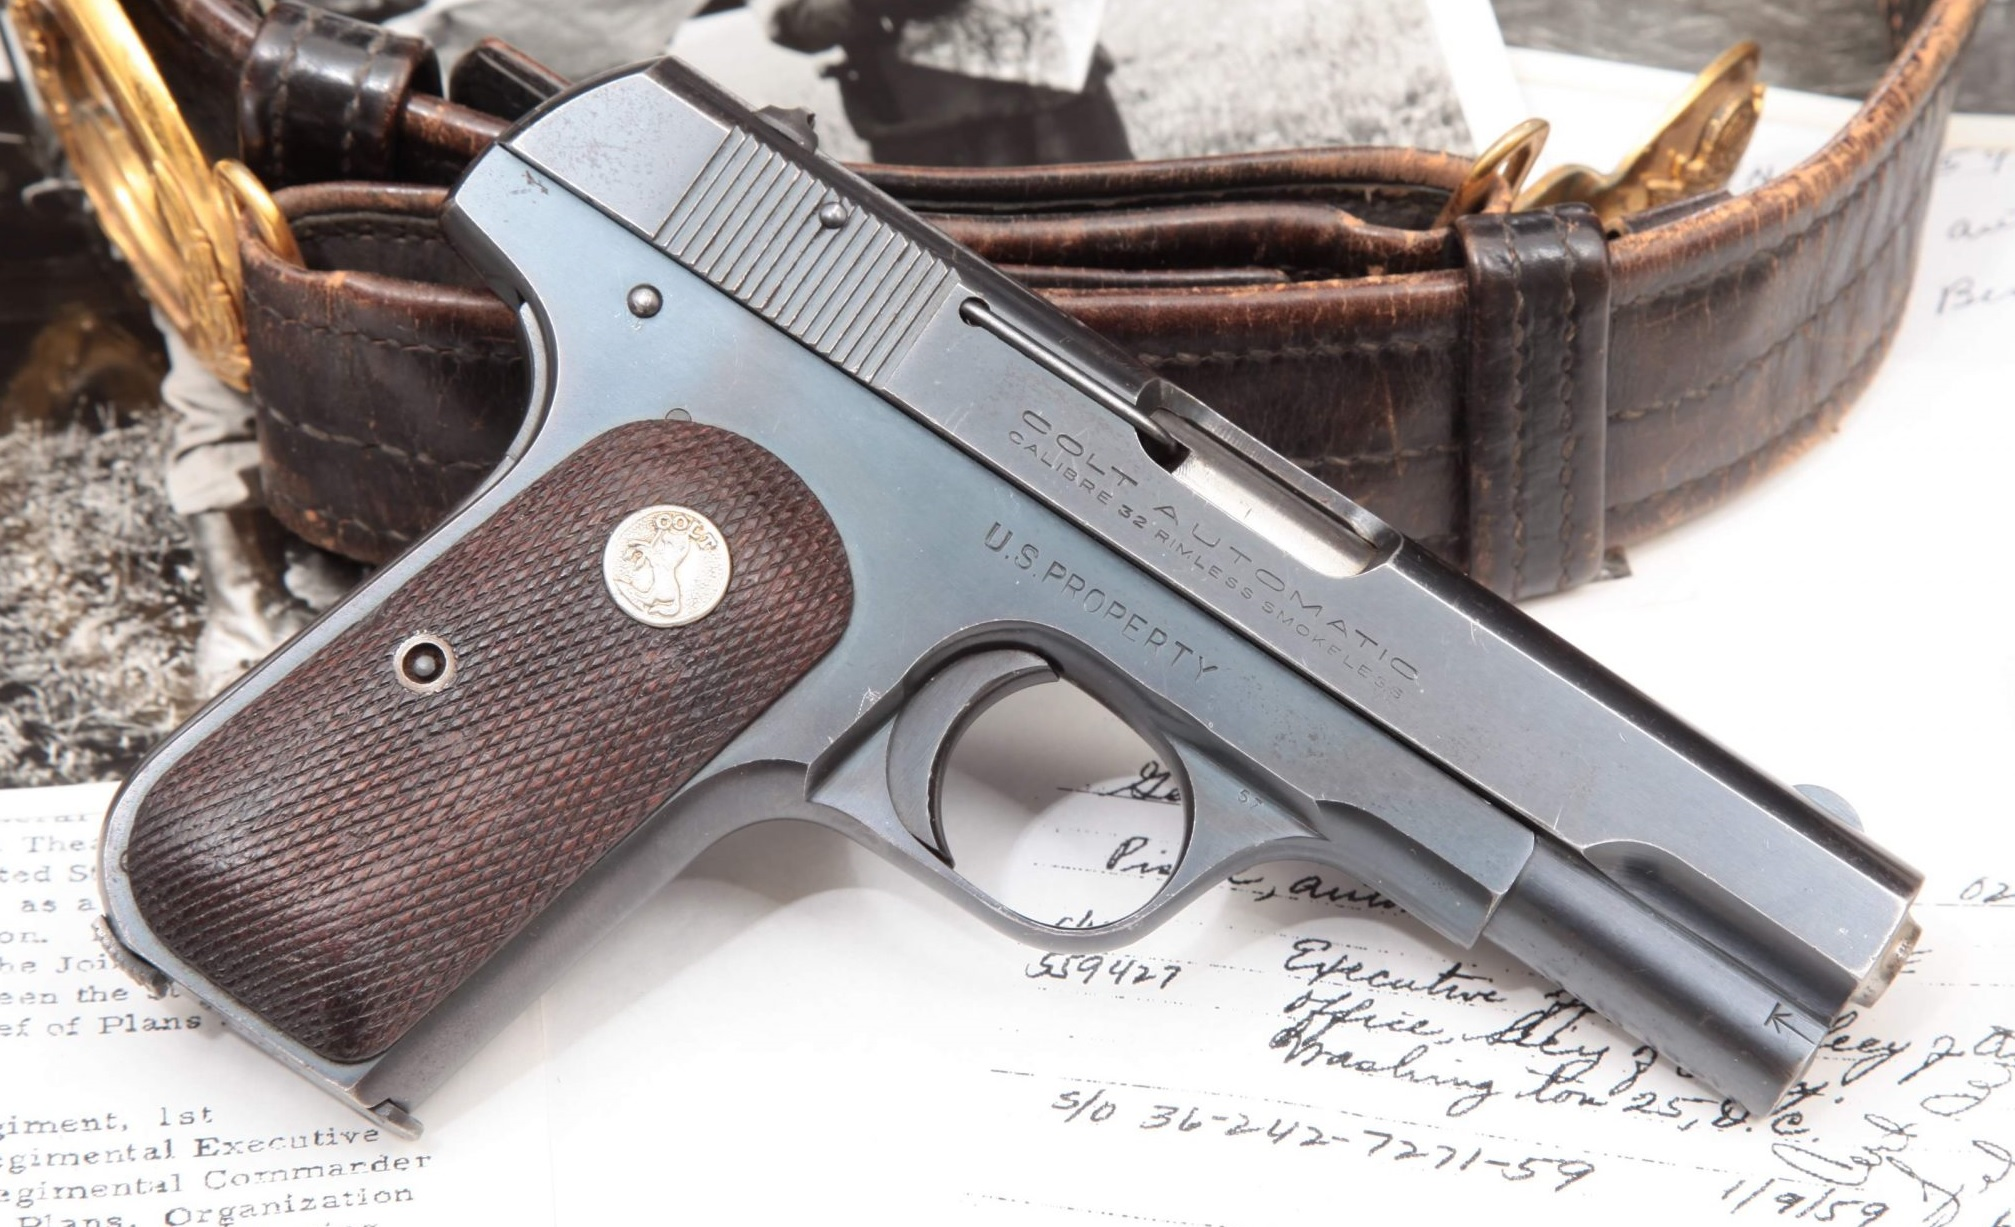 Colt Model 1903 General Officer's Pistol Issued to Major General Benjamin Franklin Taylor, WWII CBI